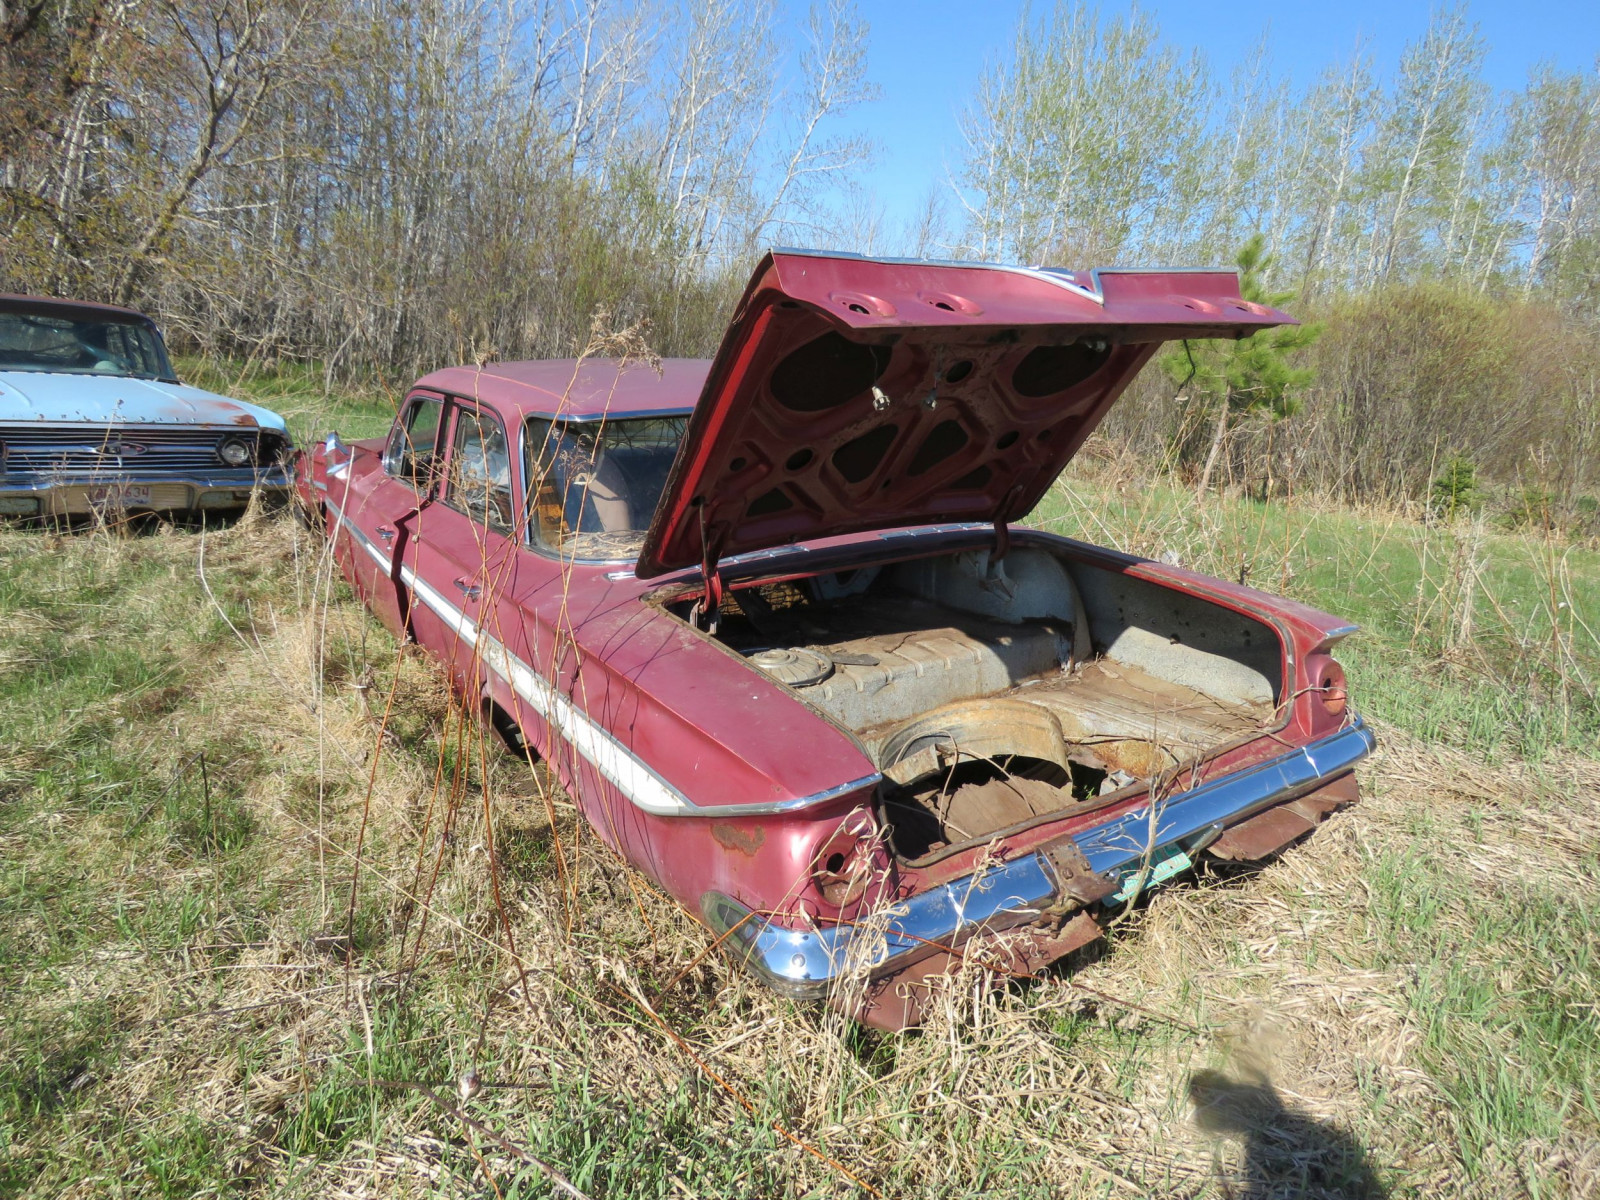 1961 Chevrolet 4dr Sedan parts only - Image 4